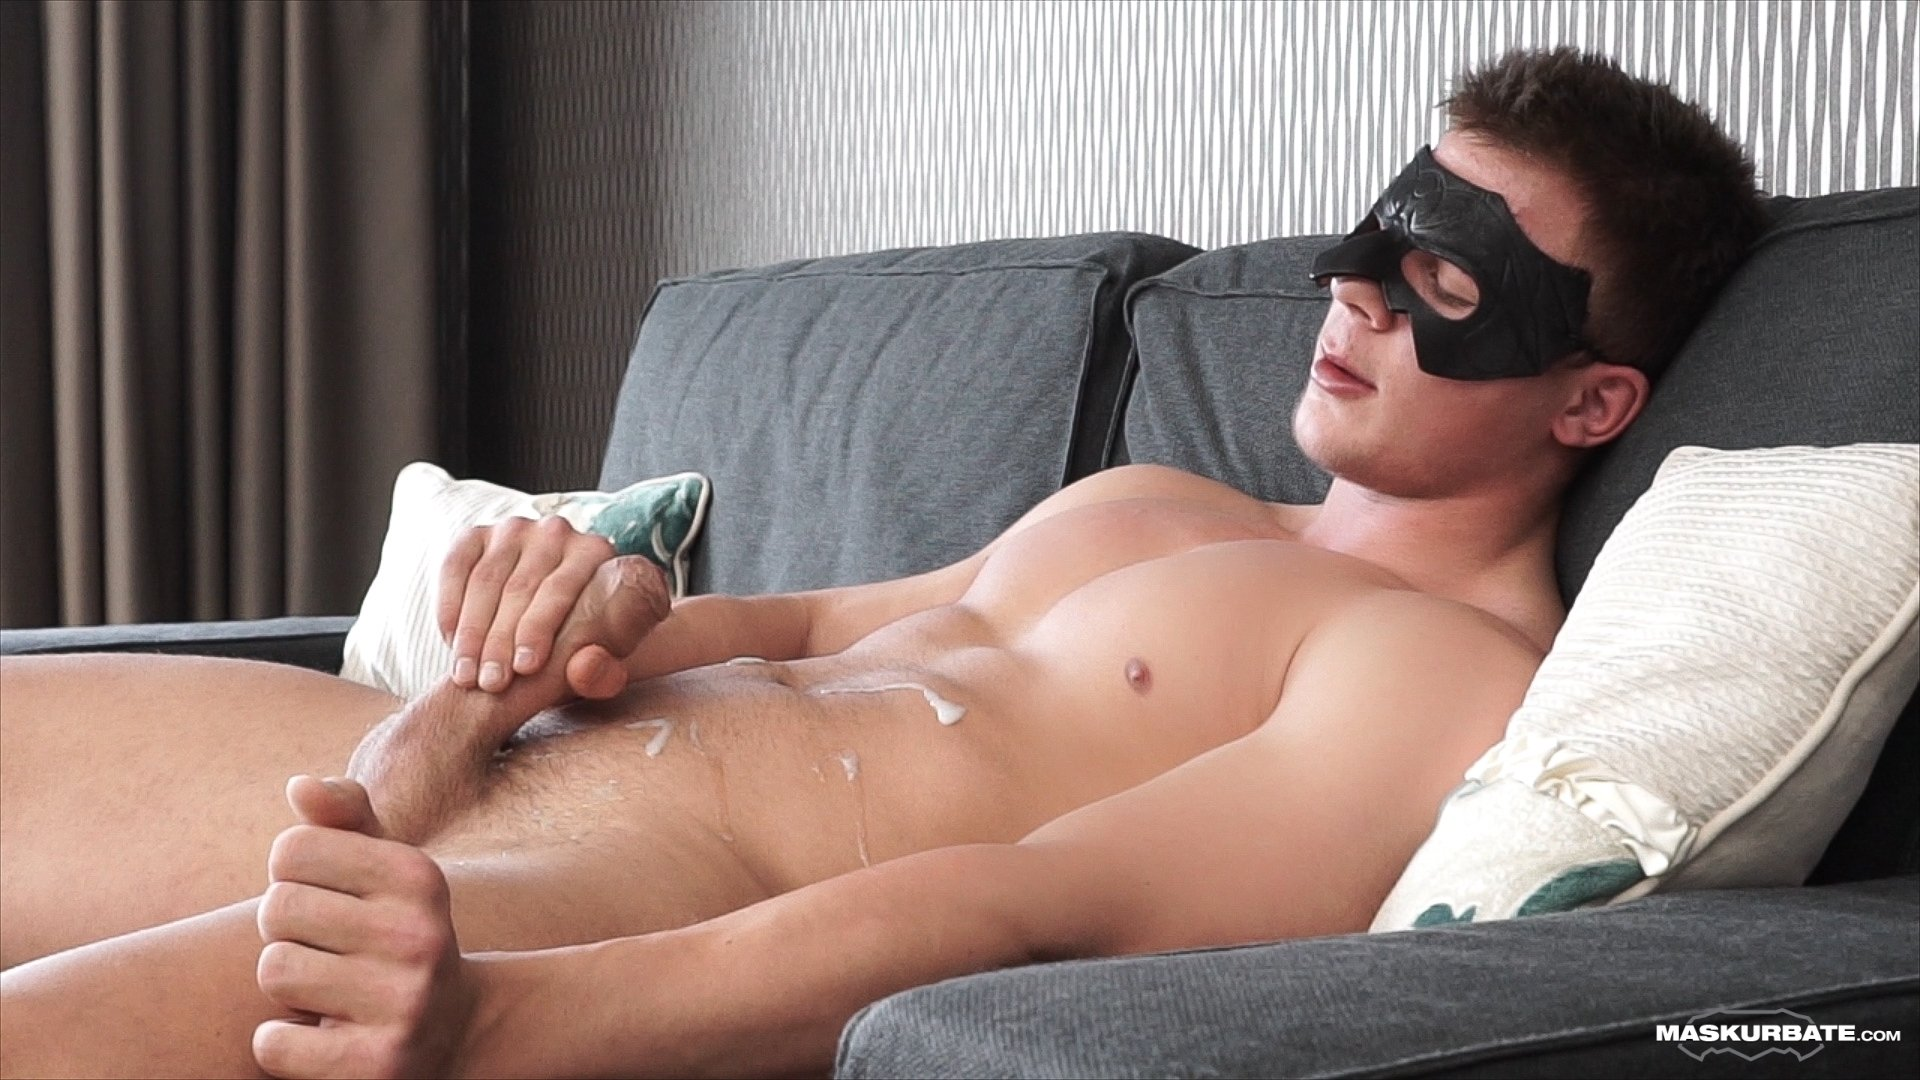 Ripped Maskurbate Model Brad Uses A Penis Pump Then Shoots A Huge Load Of Cum